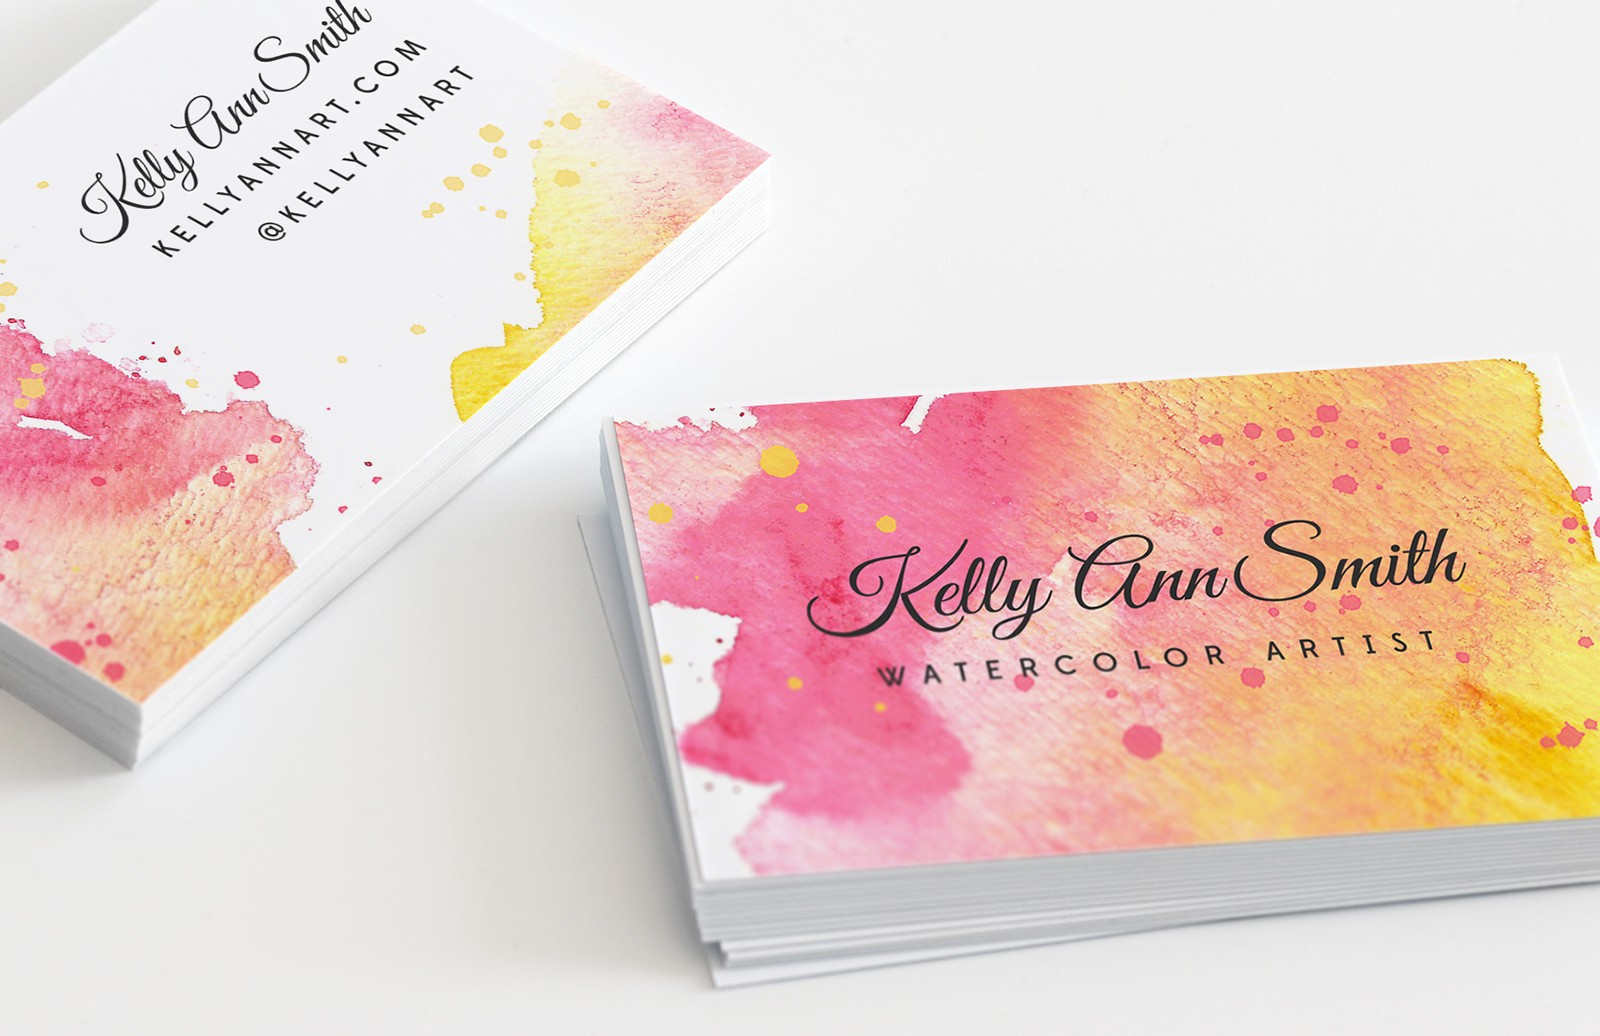 Watercolor Artist Business Card Template — Medialoot